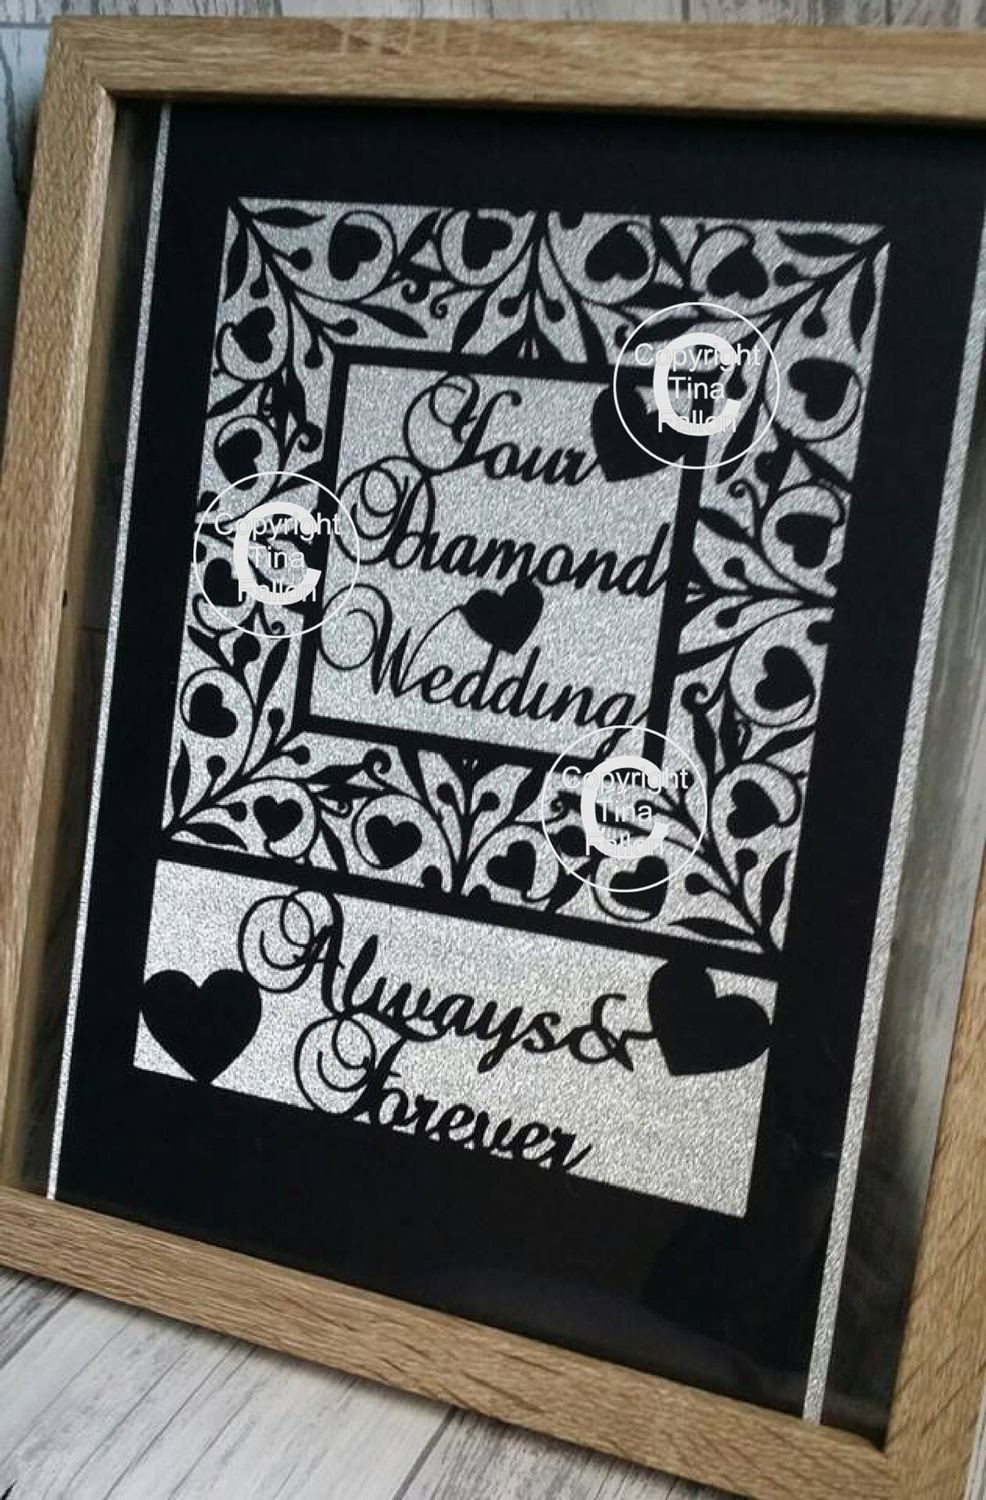 Diamond Anniversary Keepsake A4.